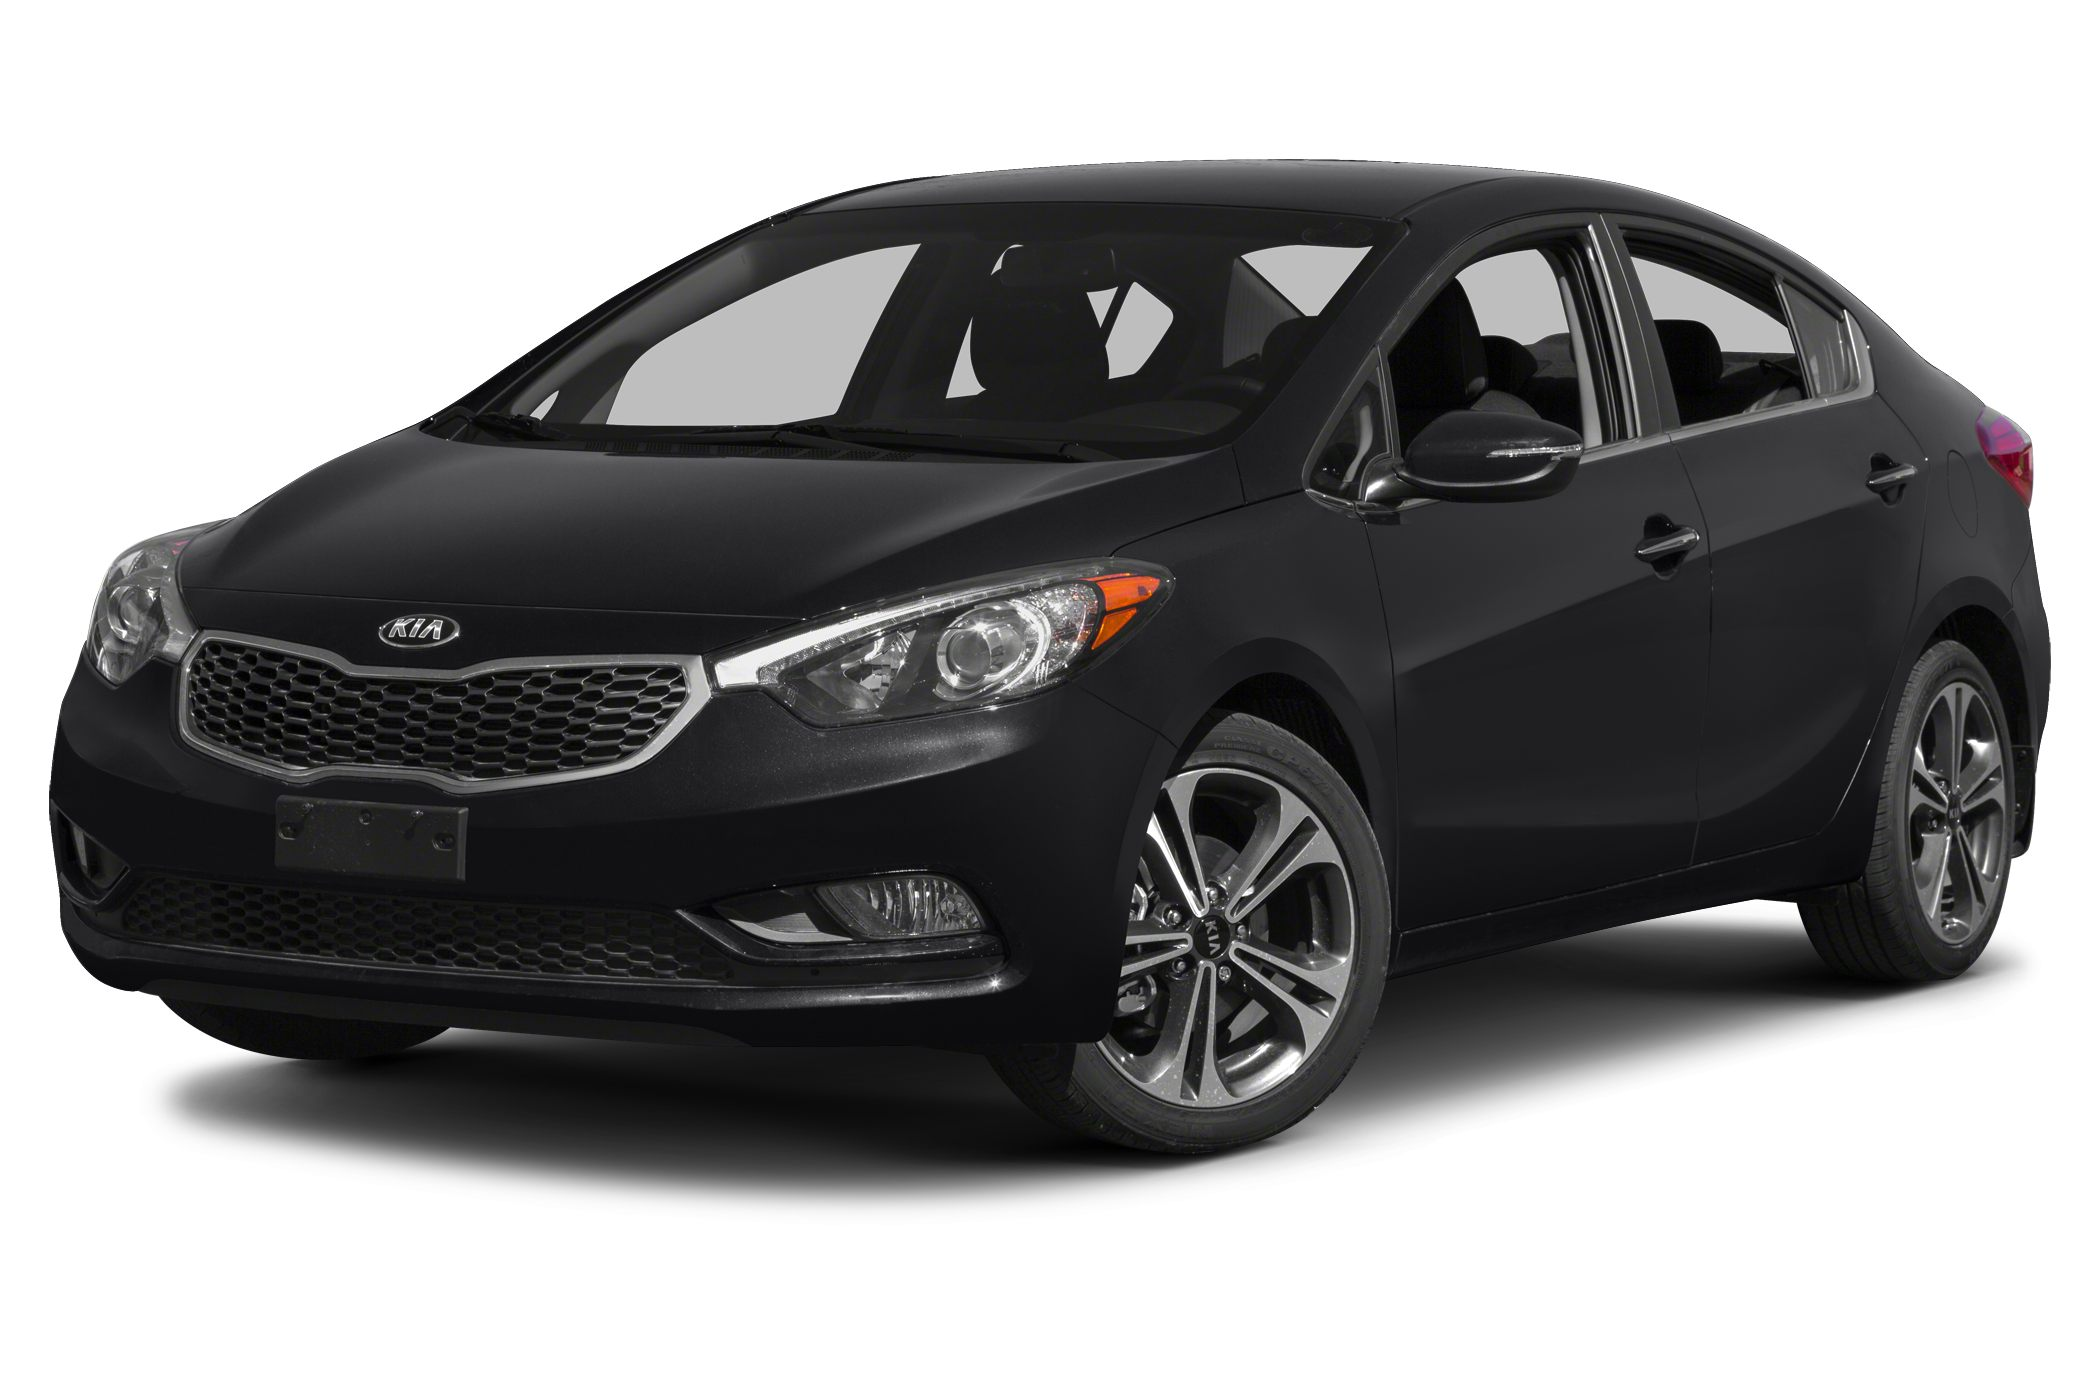 2015 Kia Forte LX Sedan for sale in Lawrence for $15,244 with 10 miles